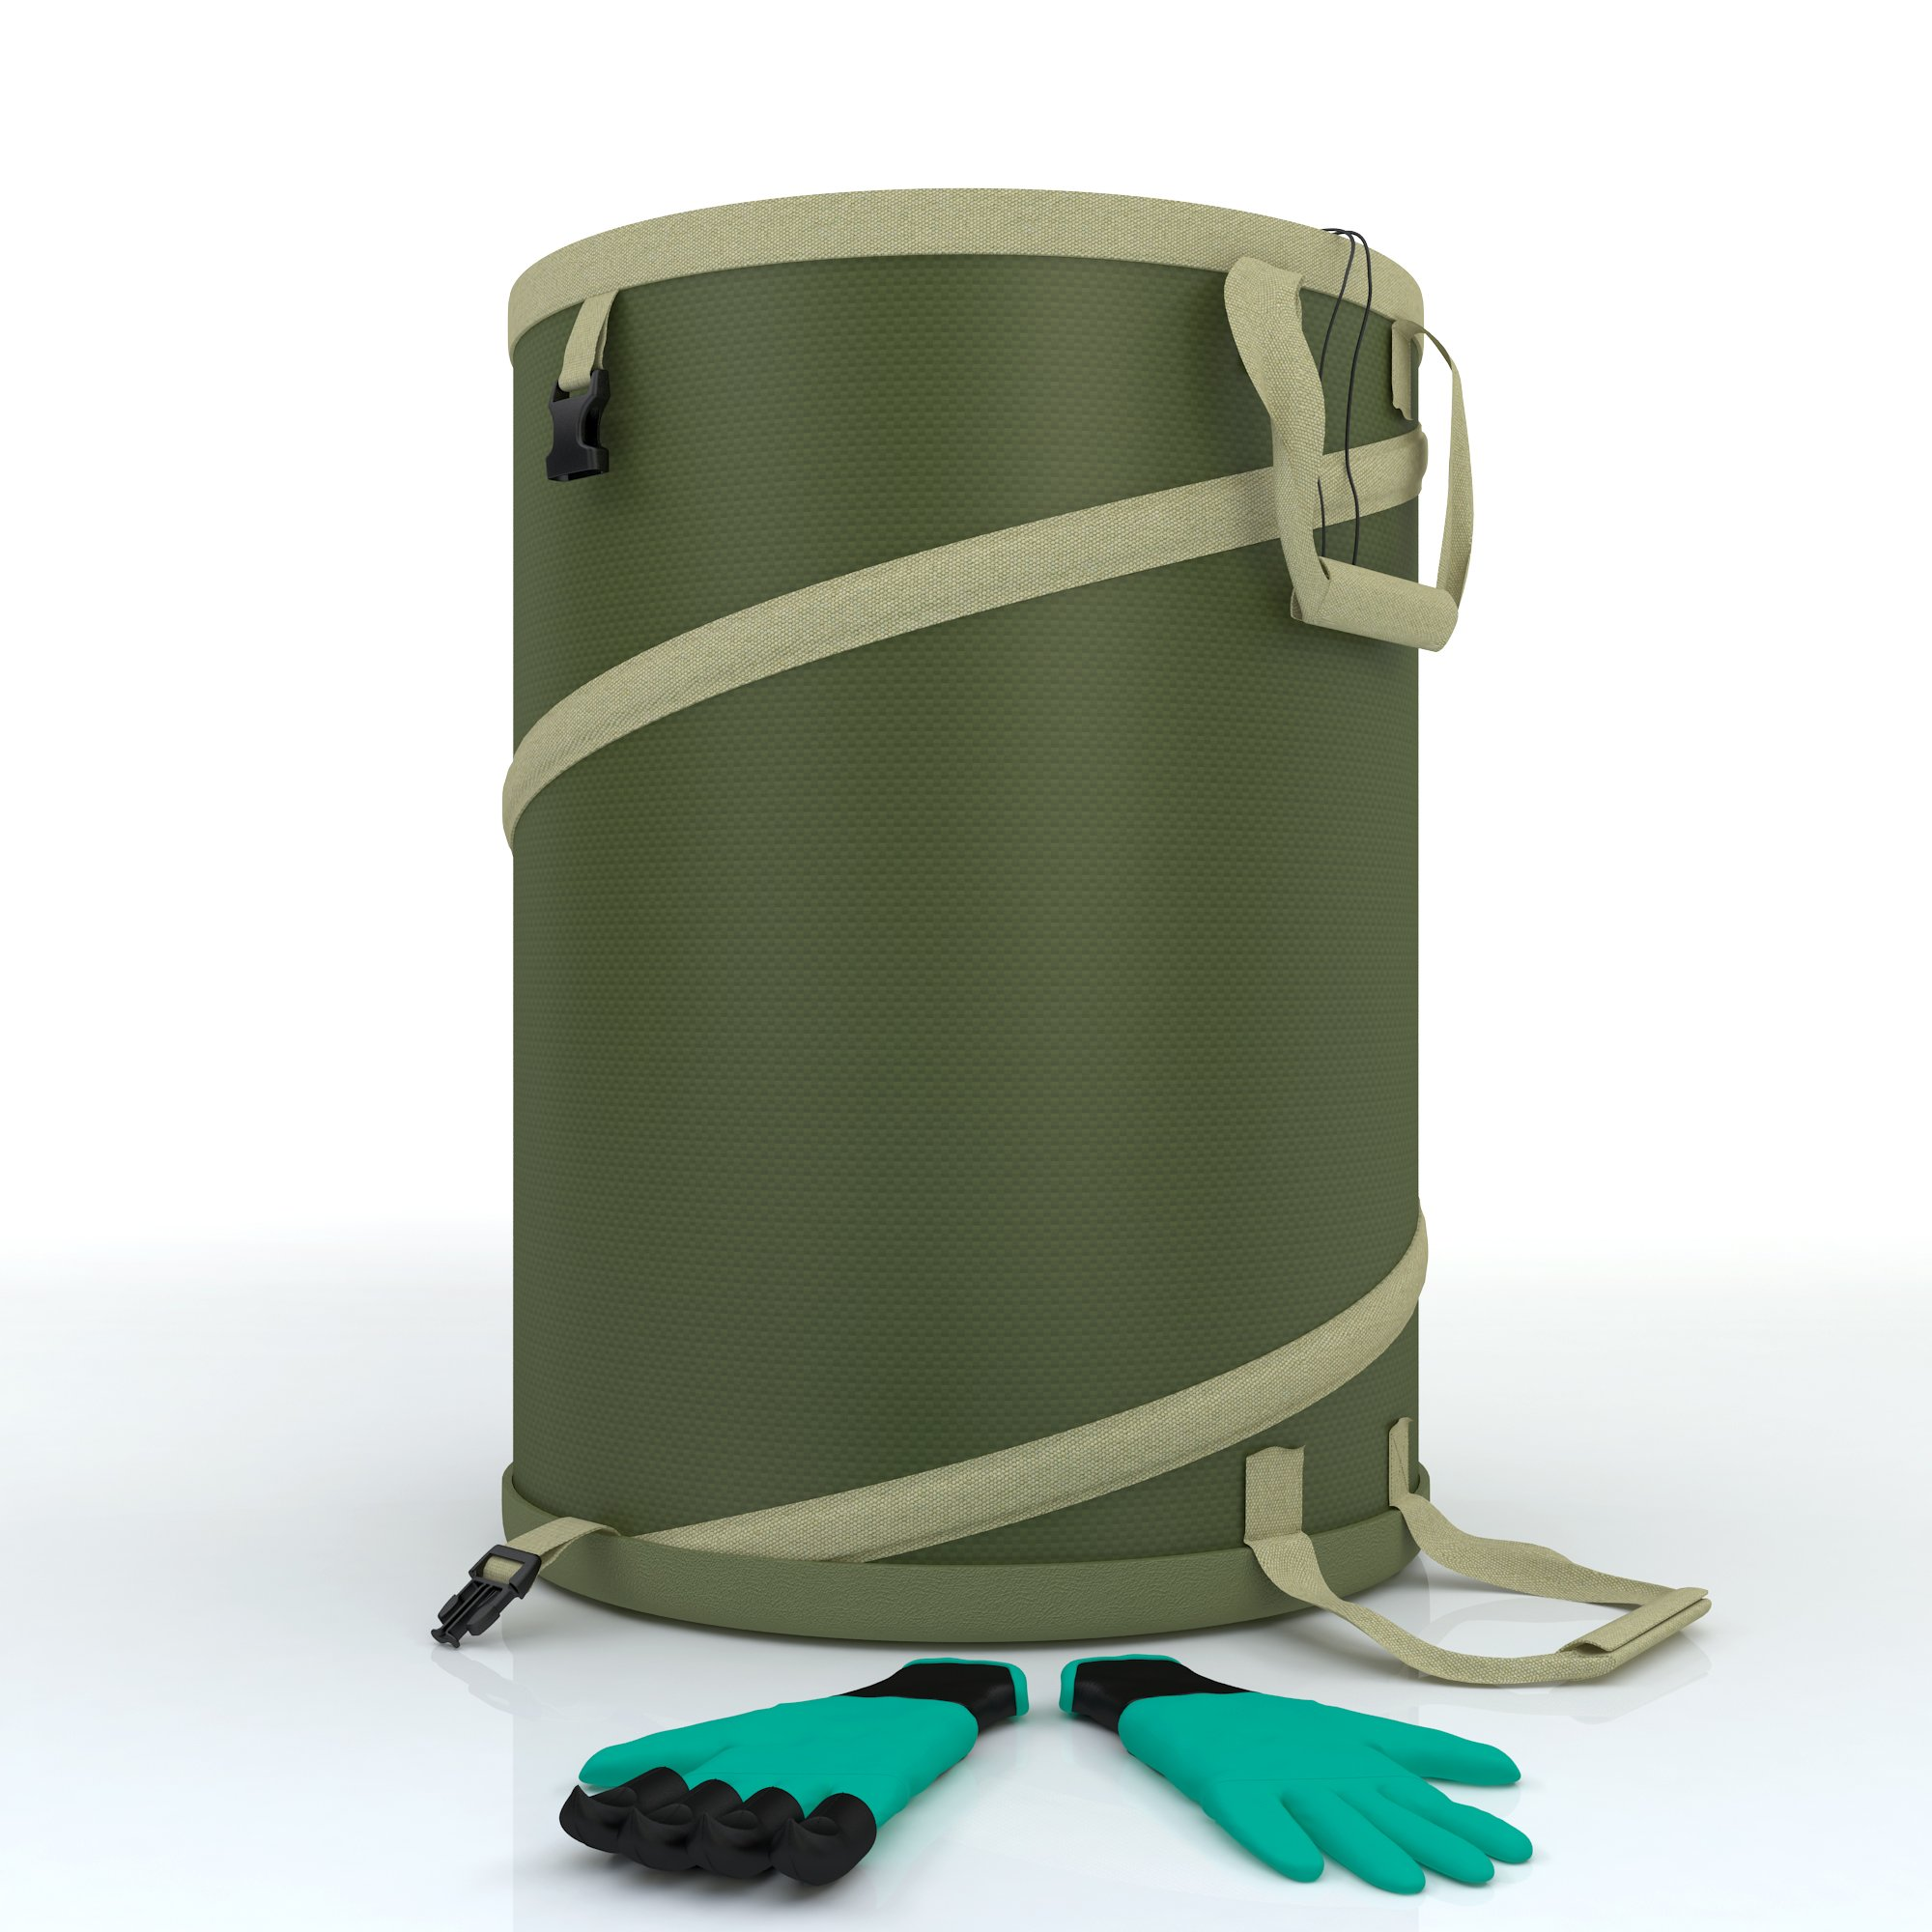 Garden Bag - Large Heavy Duty Canvas Reusable Yard Bags Great for the Trash Waste Laundry Compost Refuse and Tool Utility Collapsible Storage Comes Complete With Modern Gardening Gloves